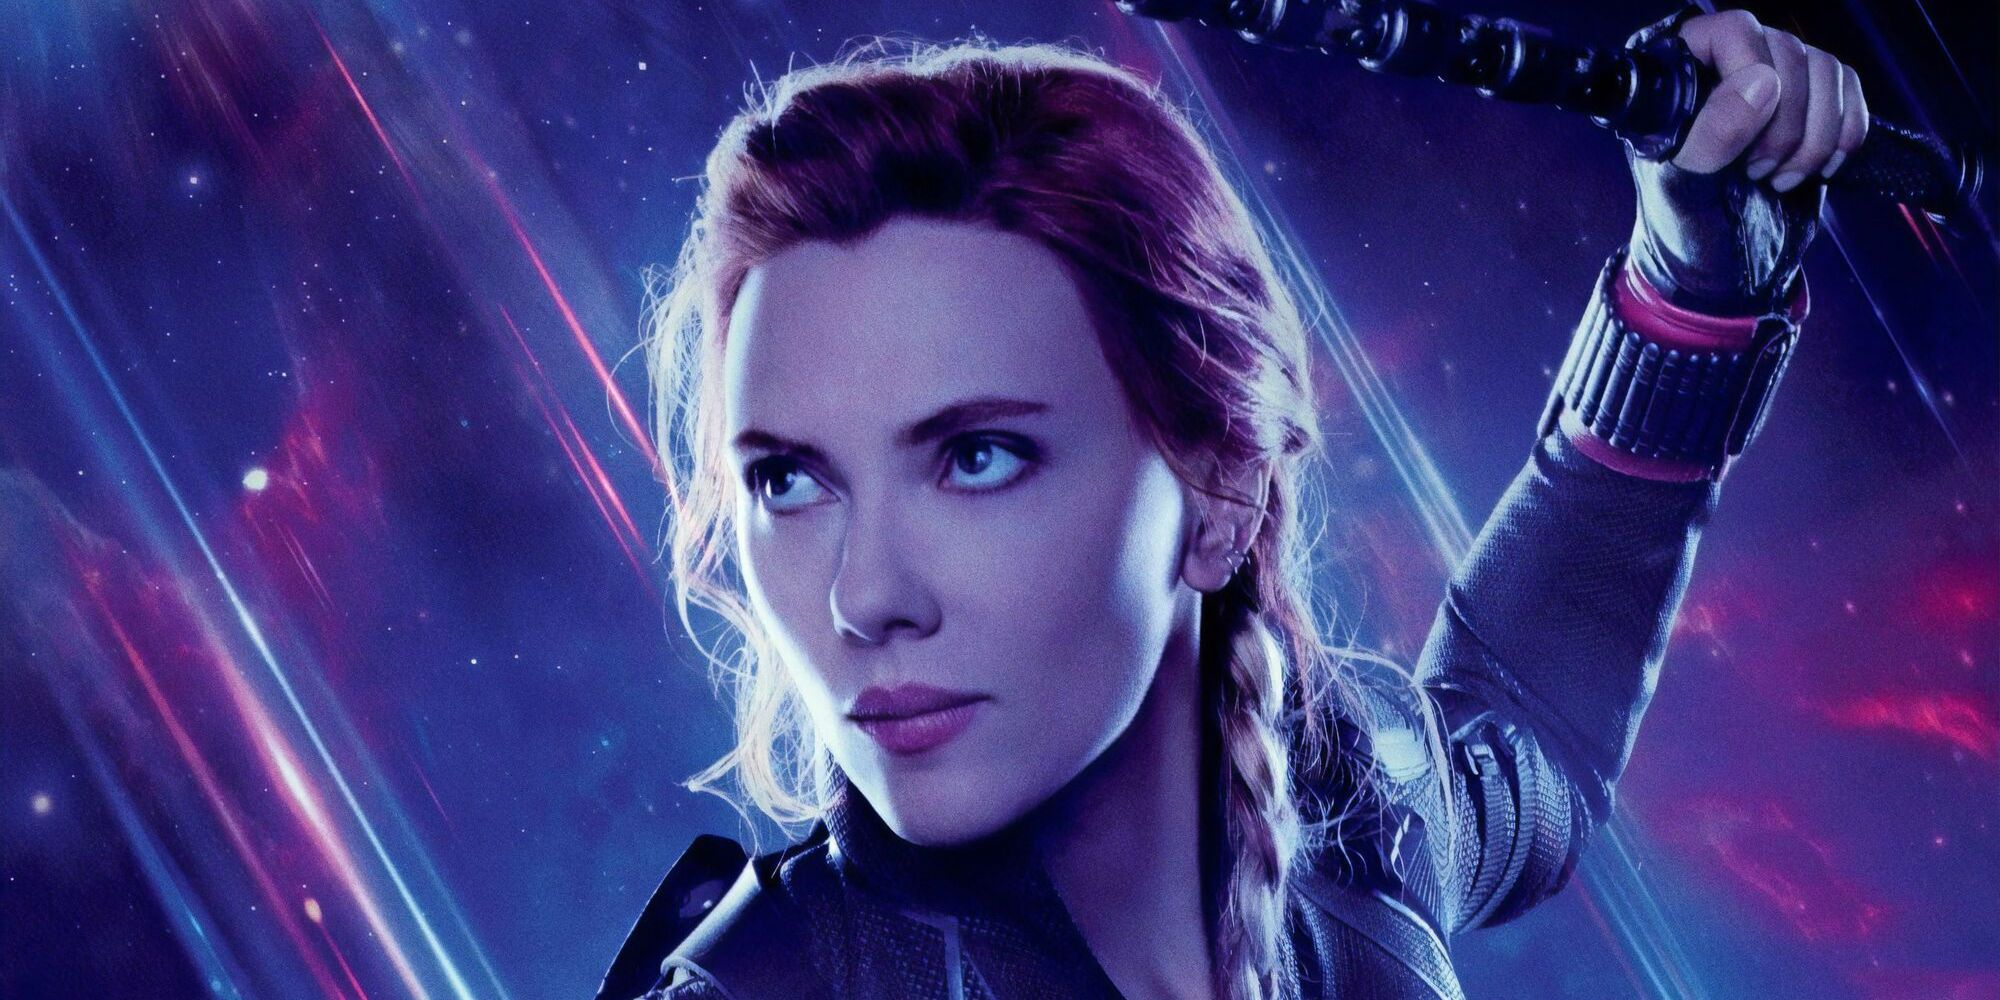 Wakanda Themed Black Widow Showcased In New Endgame Concept Art